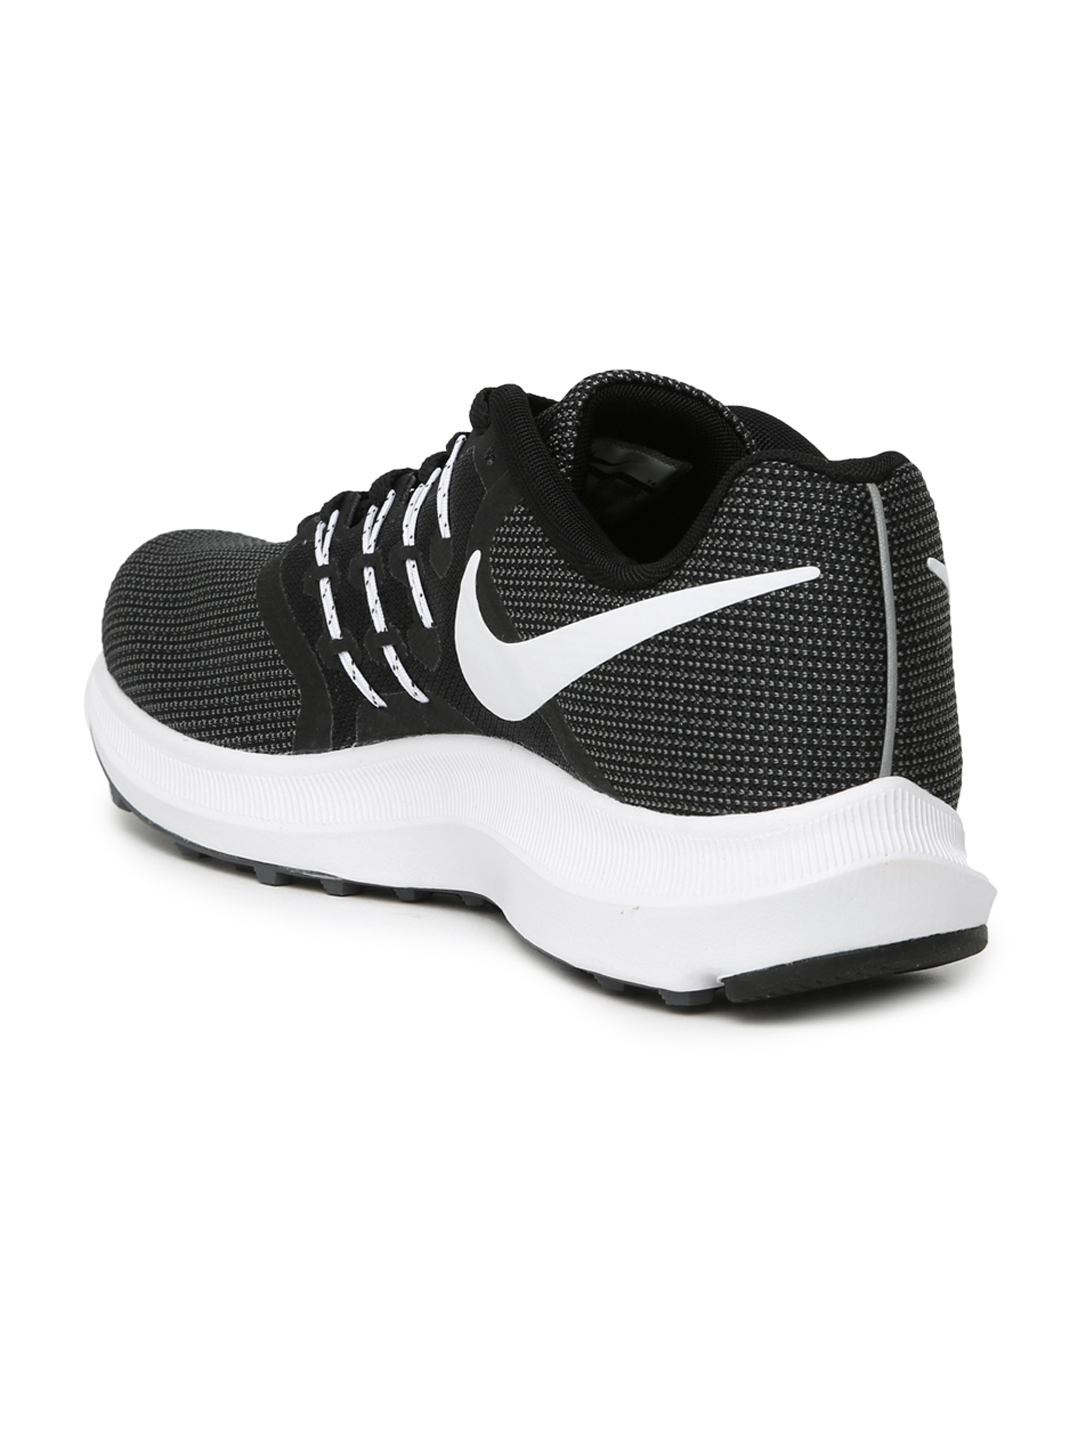 f3a91a7bbd5 Buy Nike Men Black   Charcoal Grey RUN SWIFT Running Shoes - Sports ...